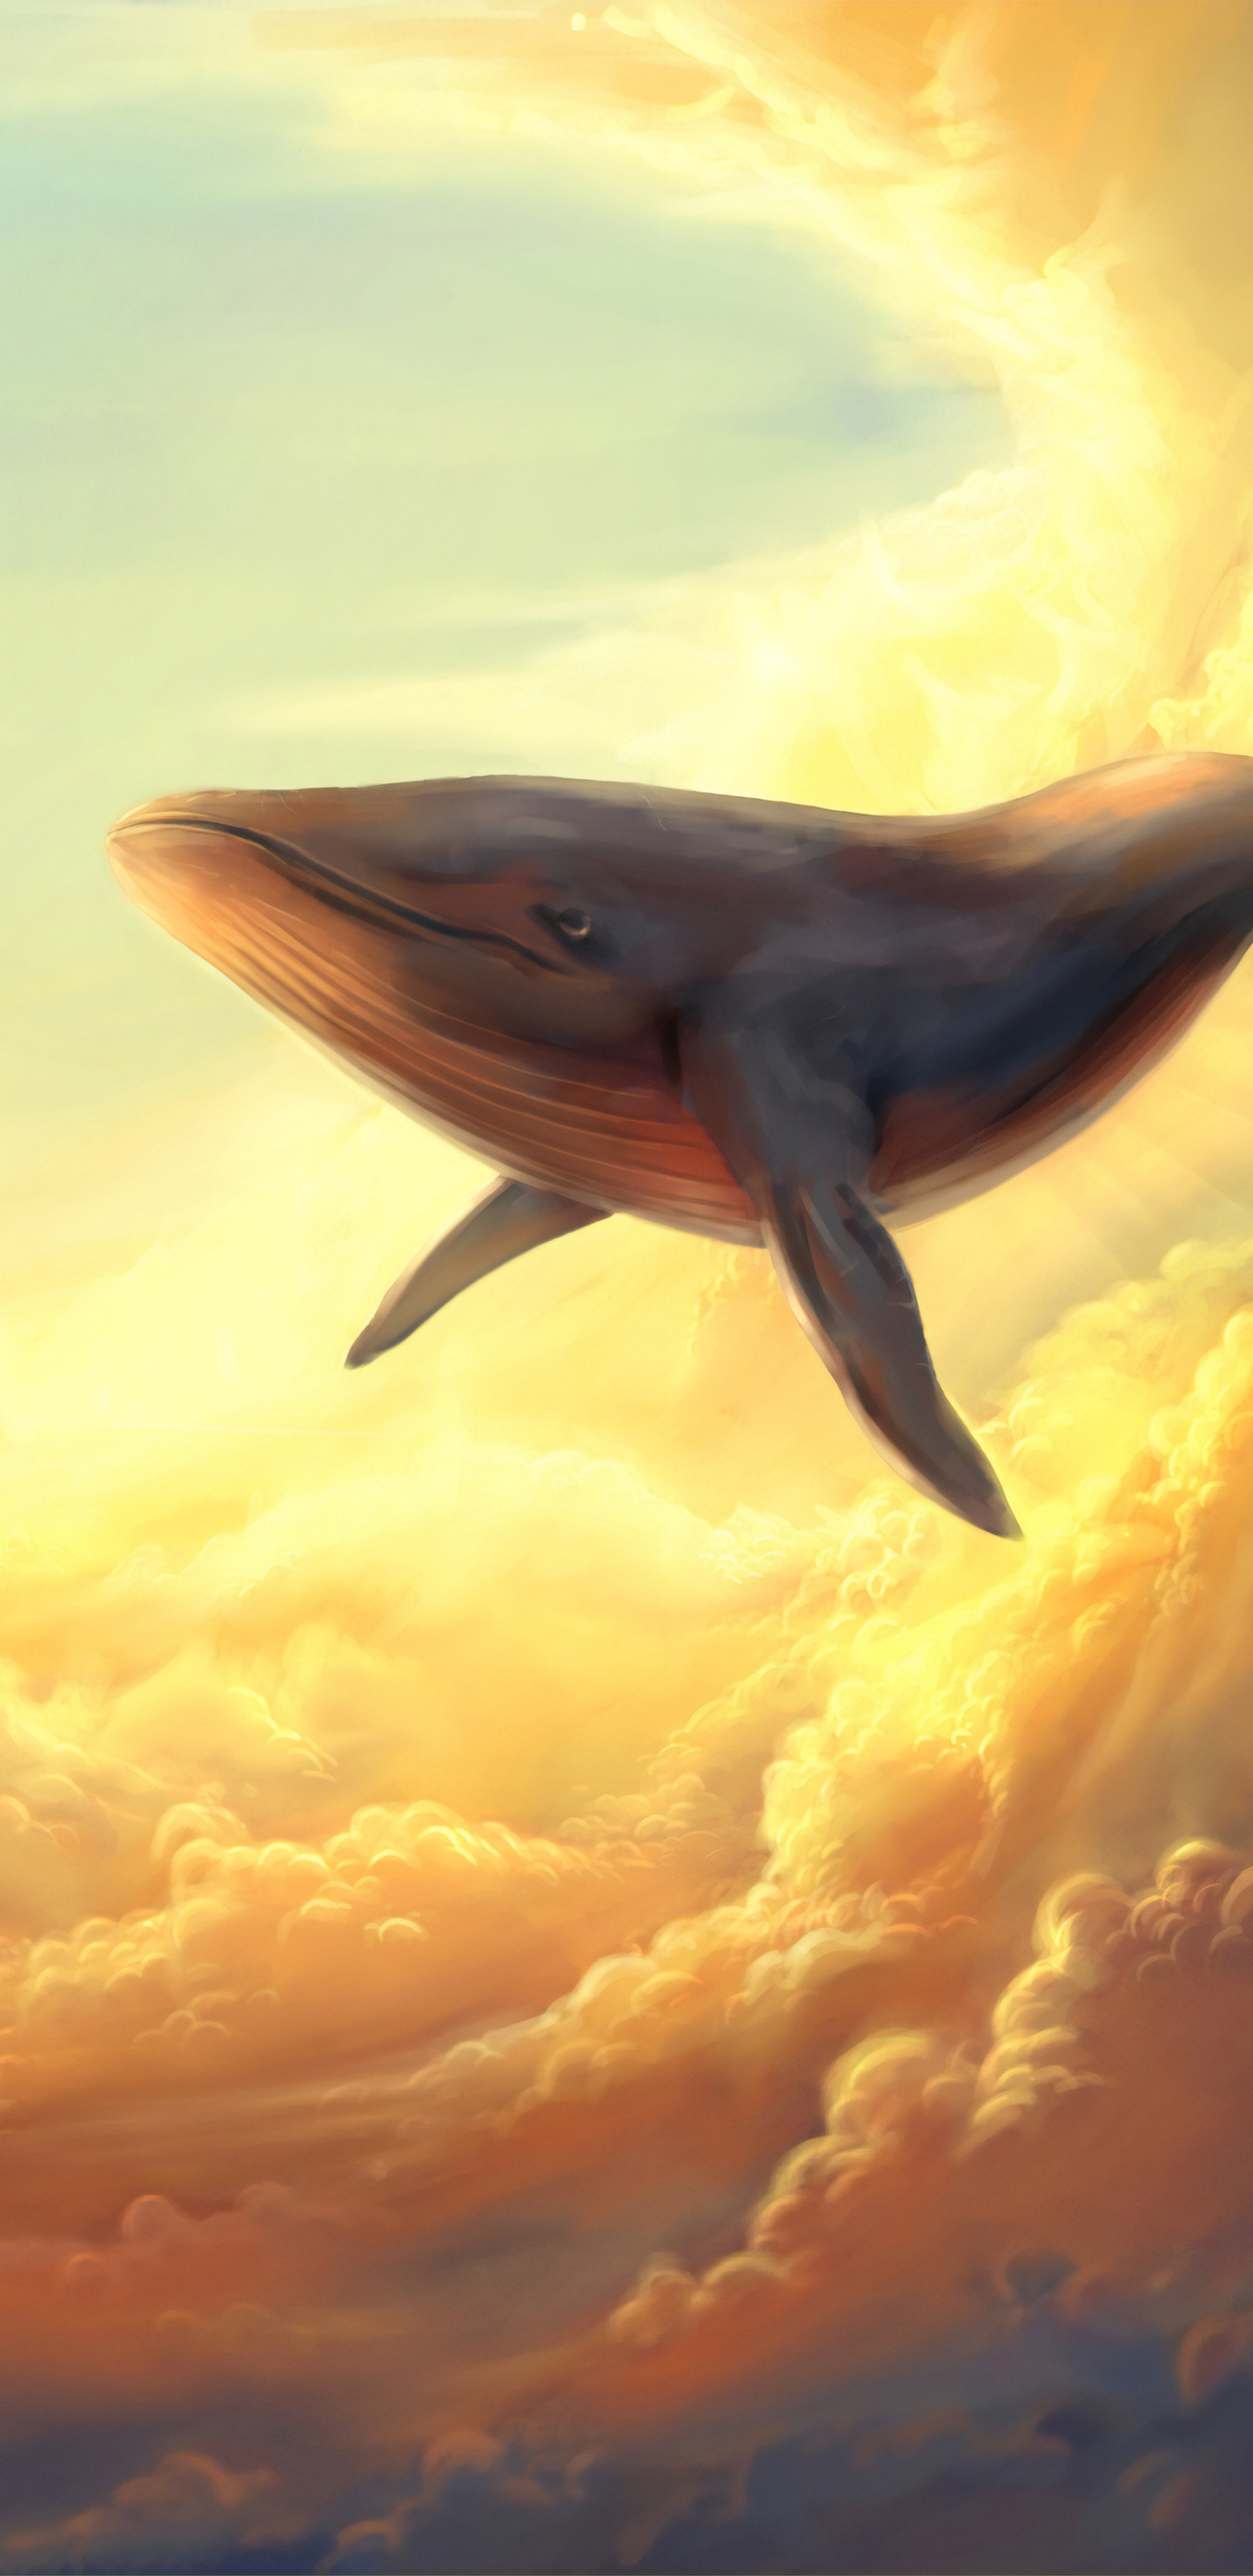 1440x2960 Whale In The Clouds Samsung Galaxy Note 9 8 S9 S8